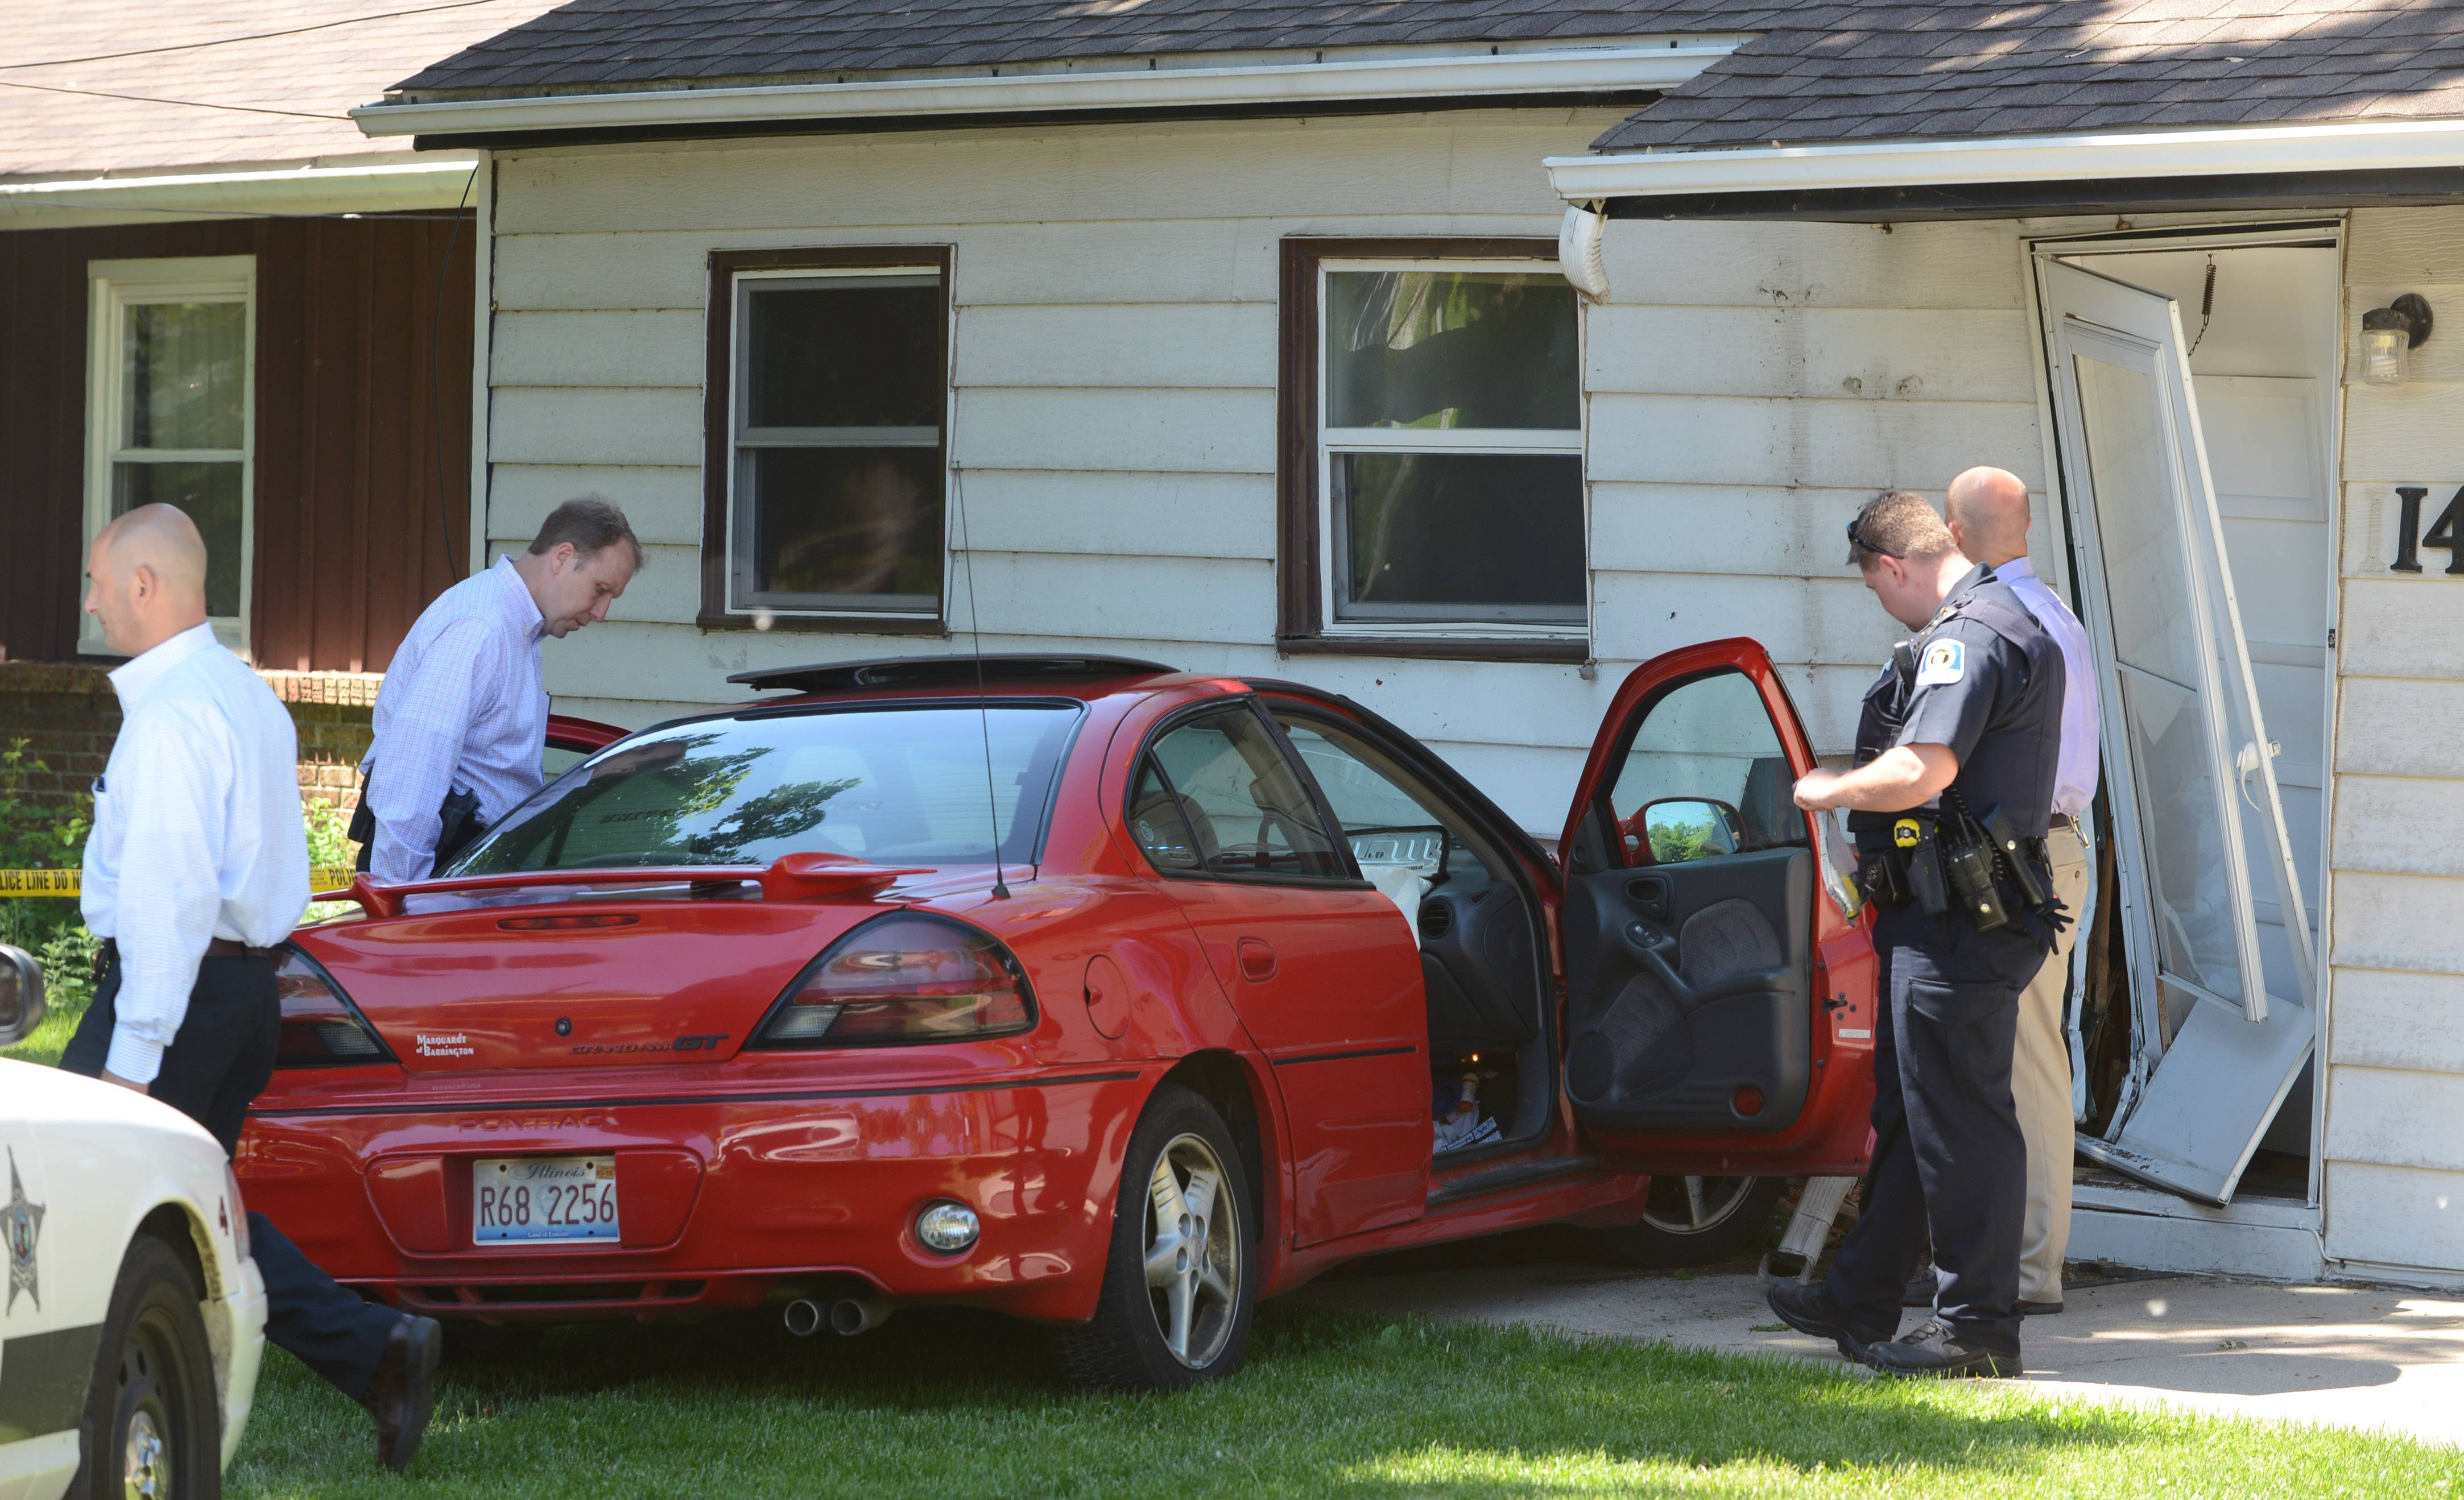 A car crashed into a house on the 1100 block of Diamond Lake Road in Mundelein after a short police chase Tuesday morning.